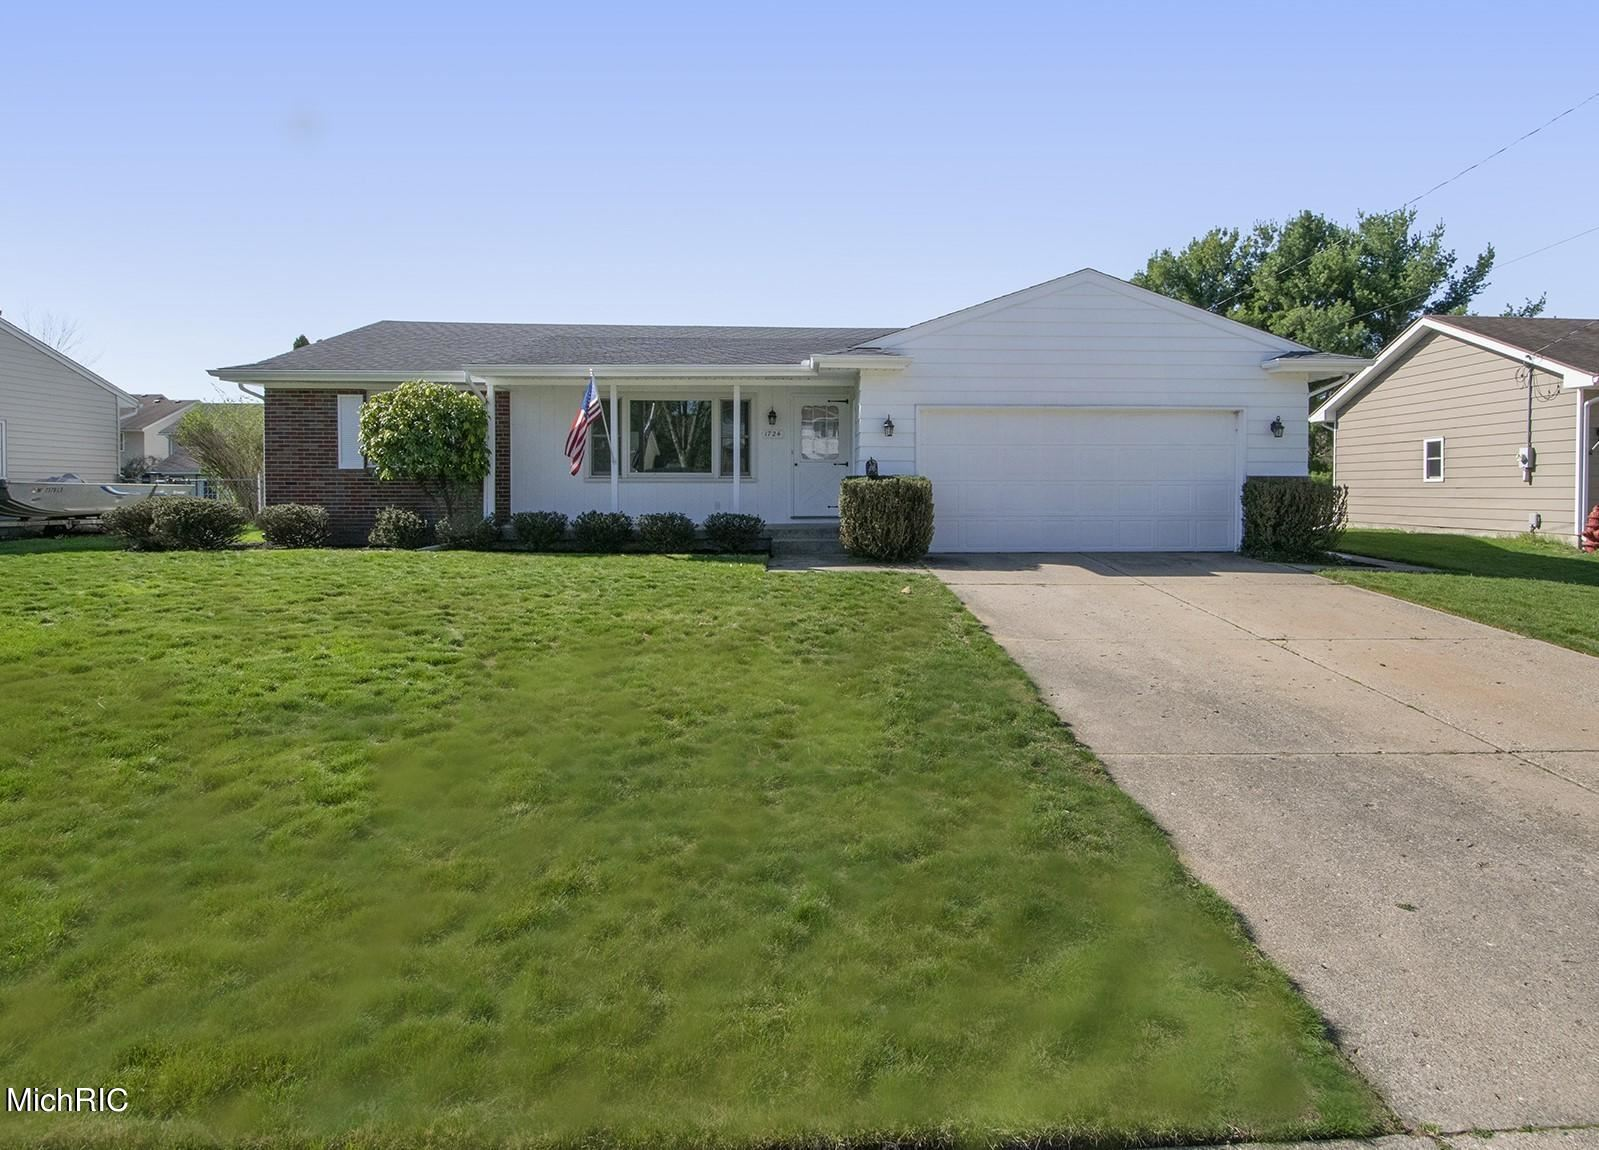 1724 41st Street SW, Wyoming, MI 49519 - MLS#: 21012323